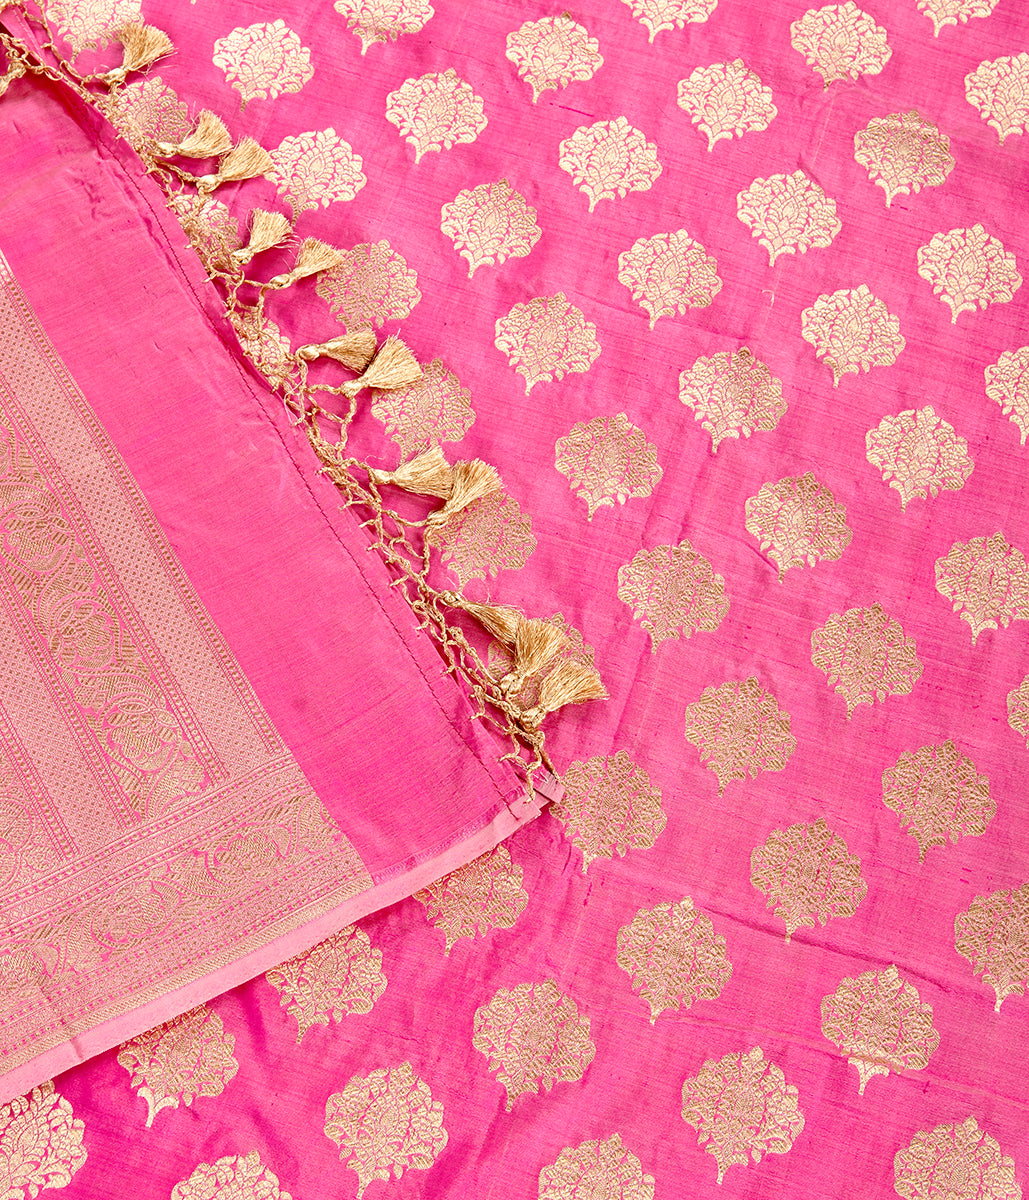 Handwoven Baby Pink Silk Dupatta with Leaf Motif and Floral Border